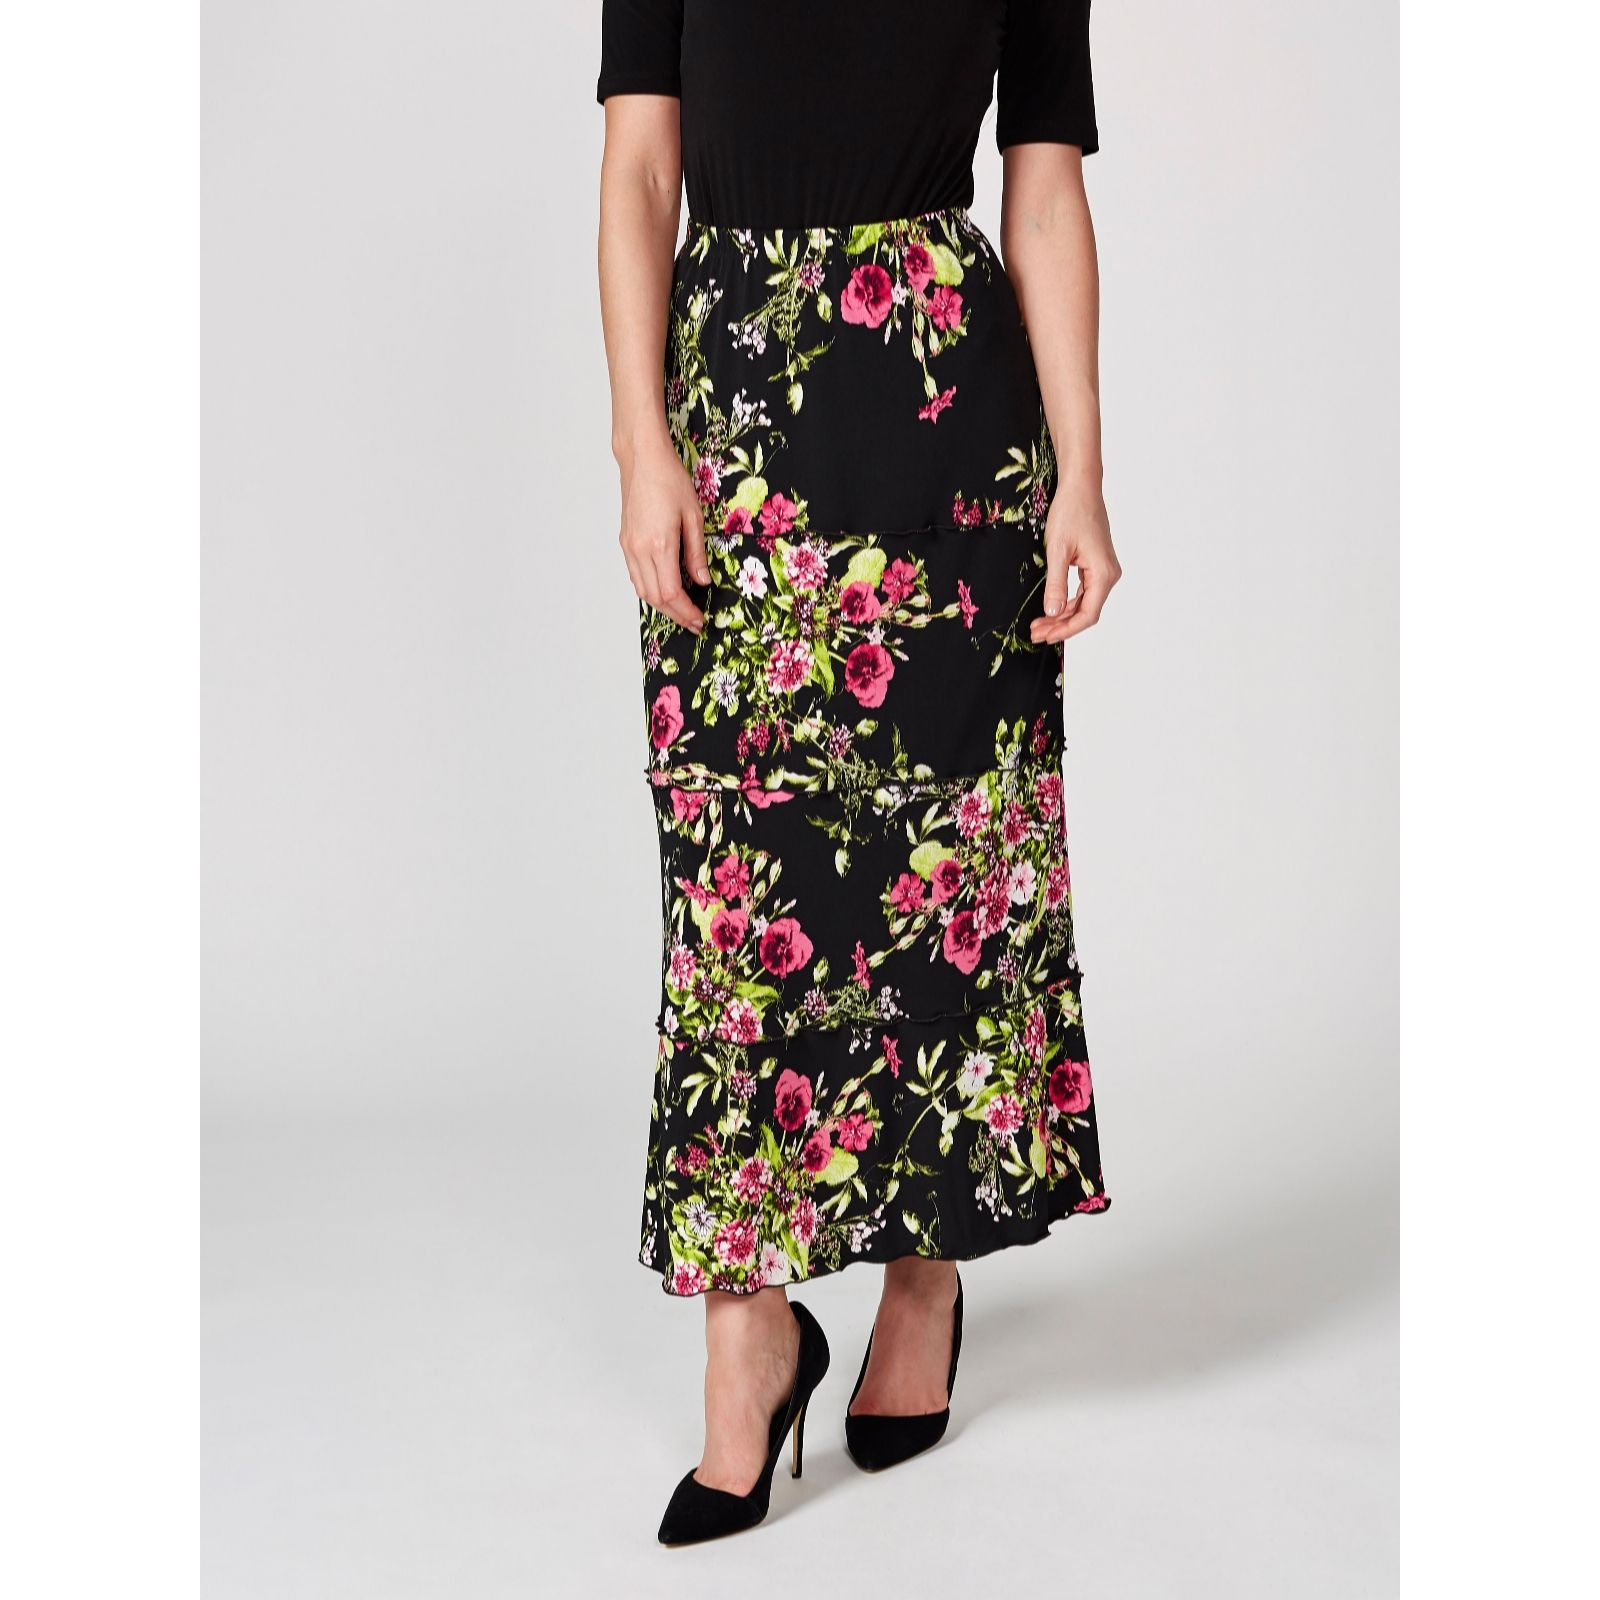 d8ffad97f2 Kim & Co Country Bouquet Brazil Jersey Tiered Maxi Skirt - QVC UK